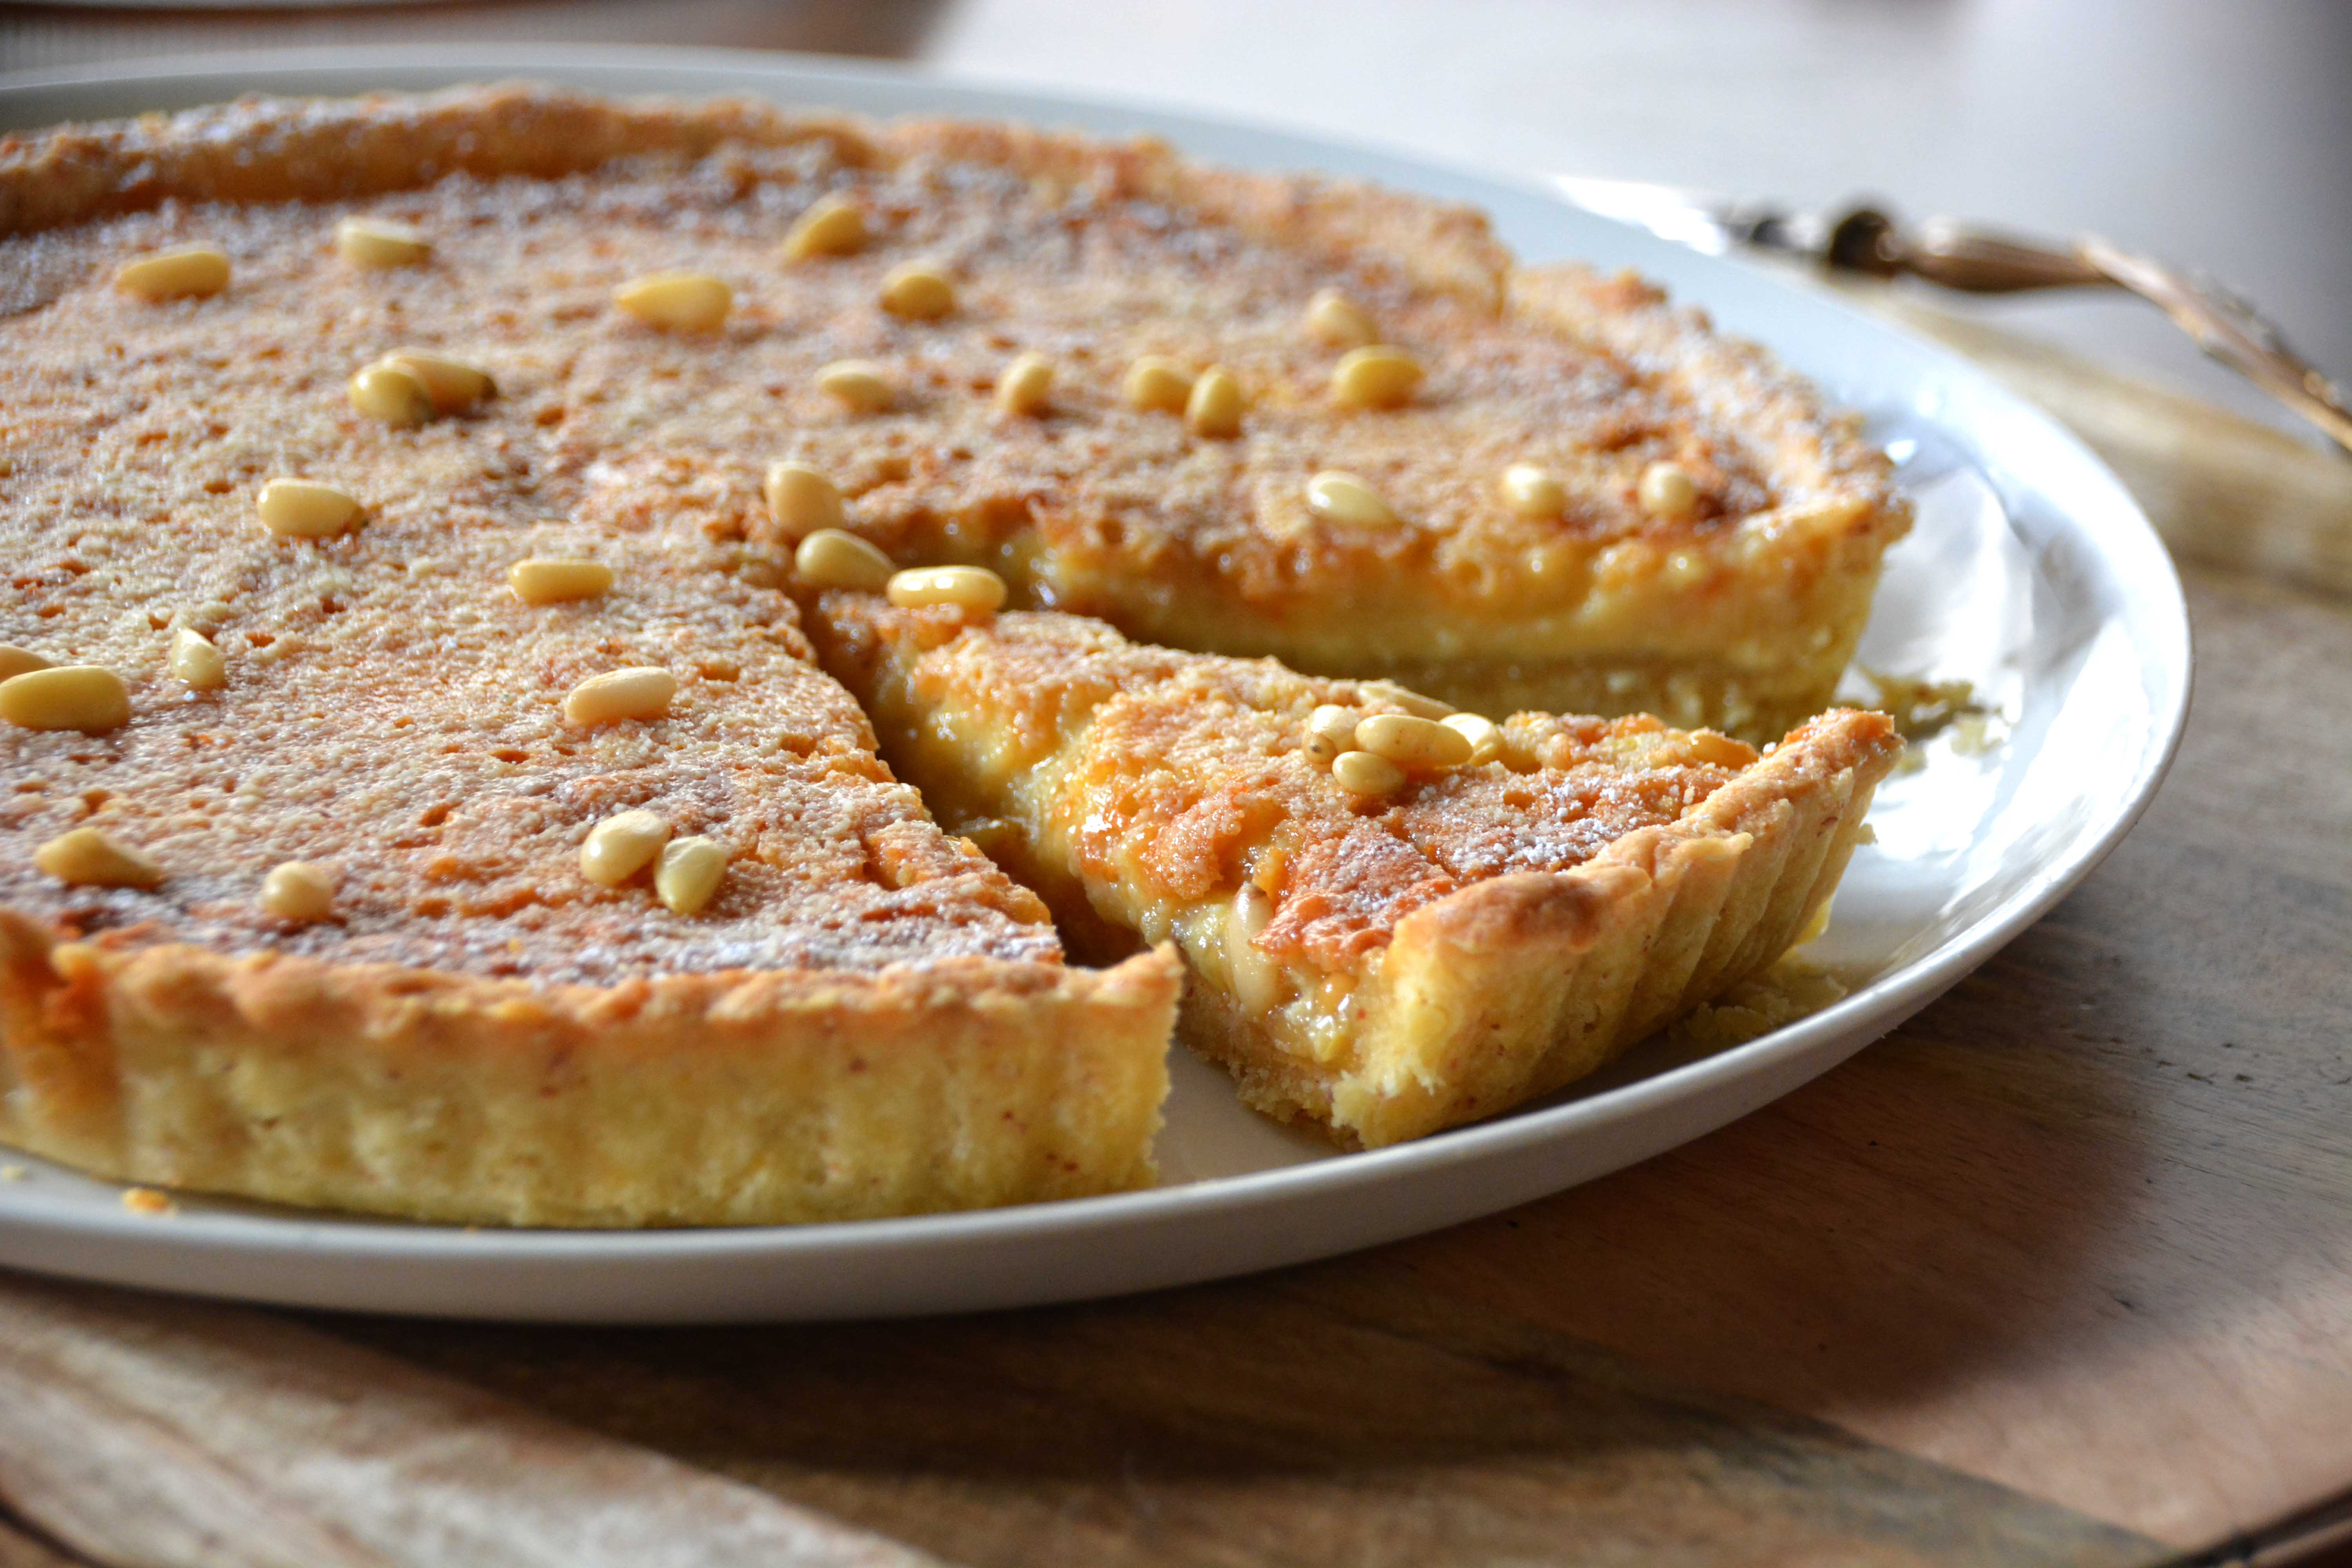 Pine nut, ricotta and lemon tart